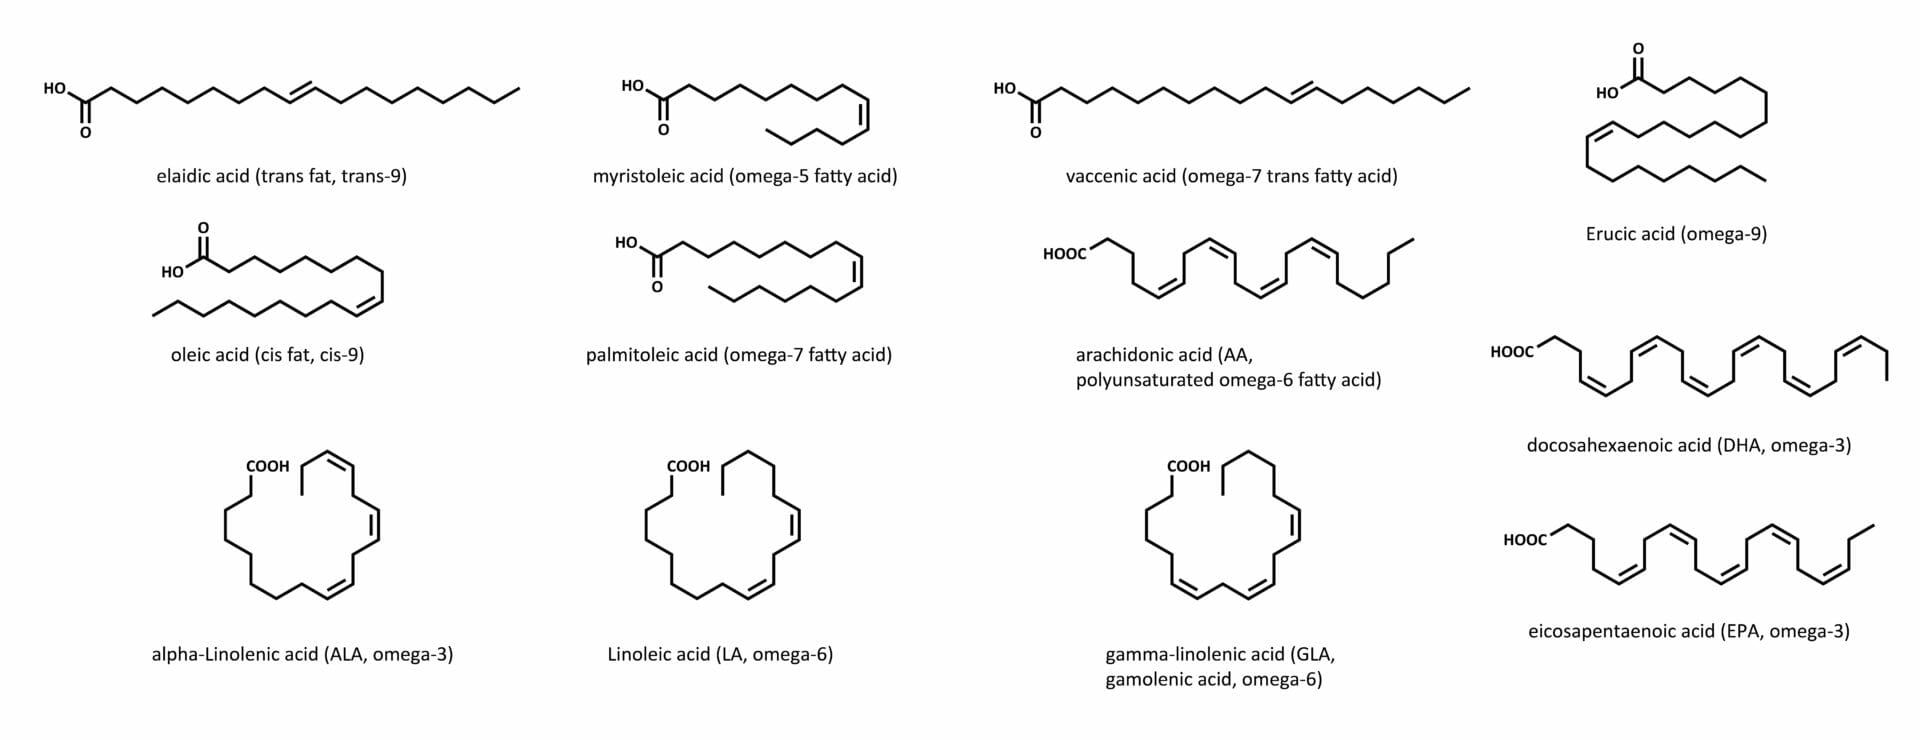 Overview of unsaturated fatty acids